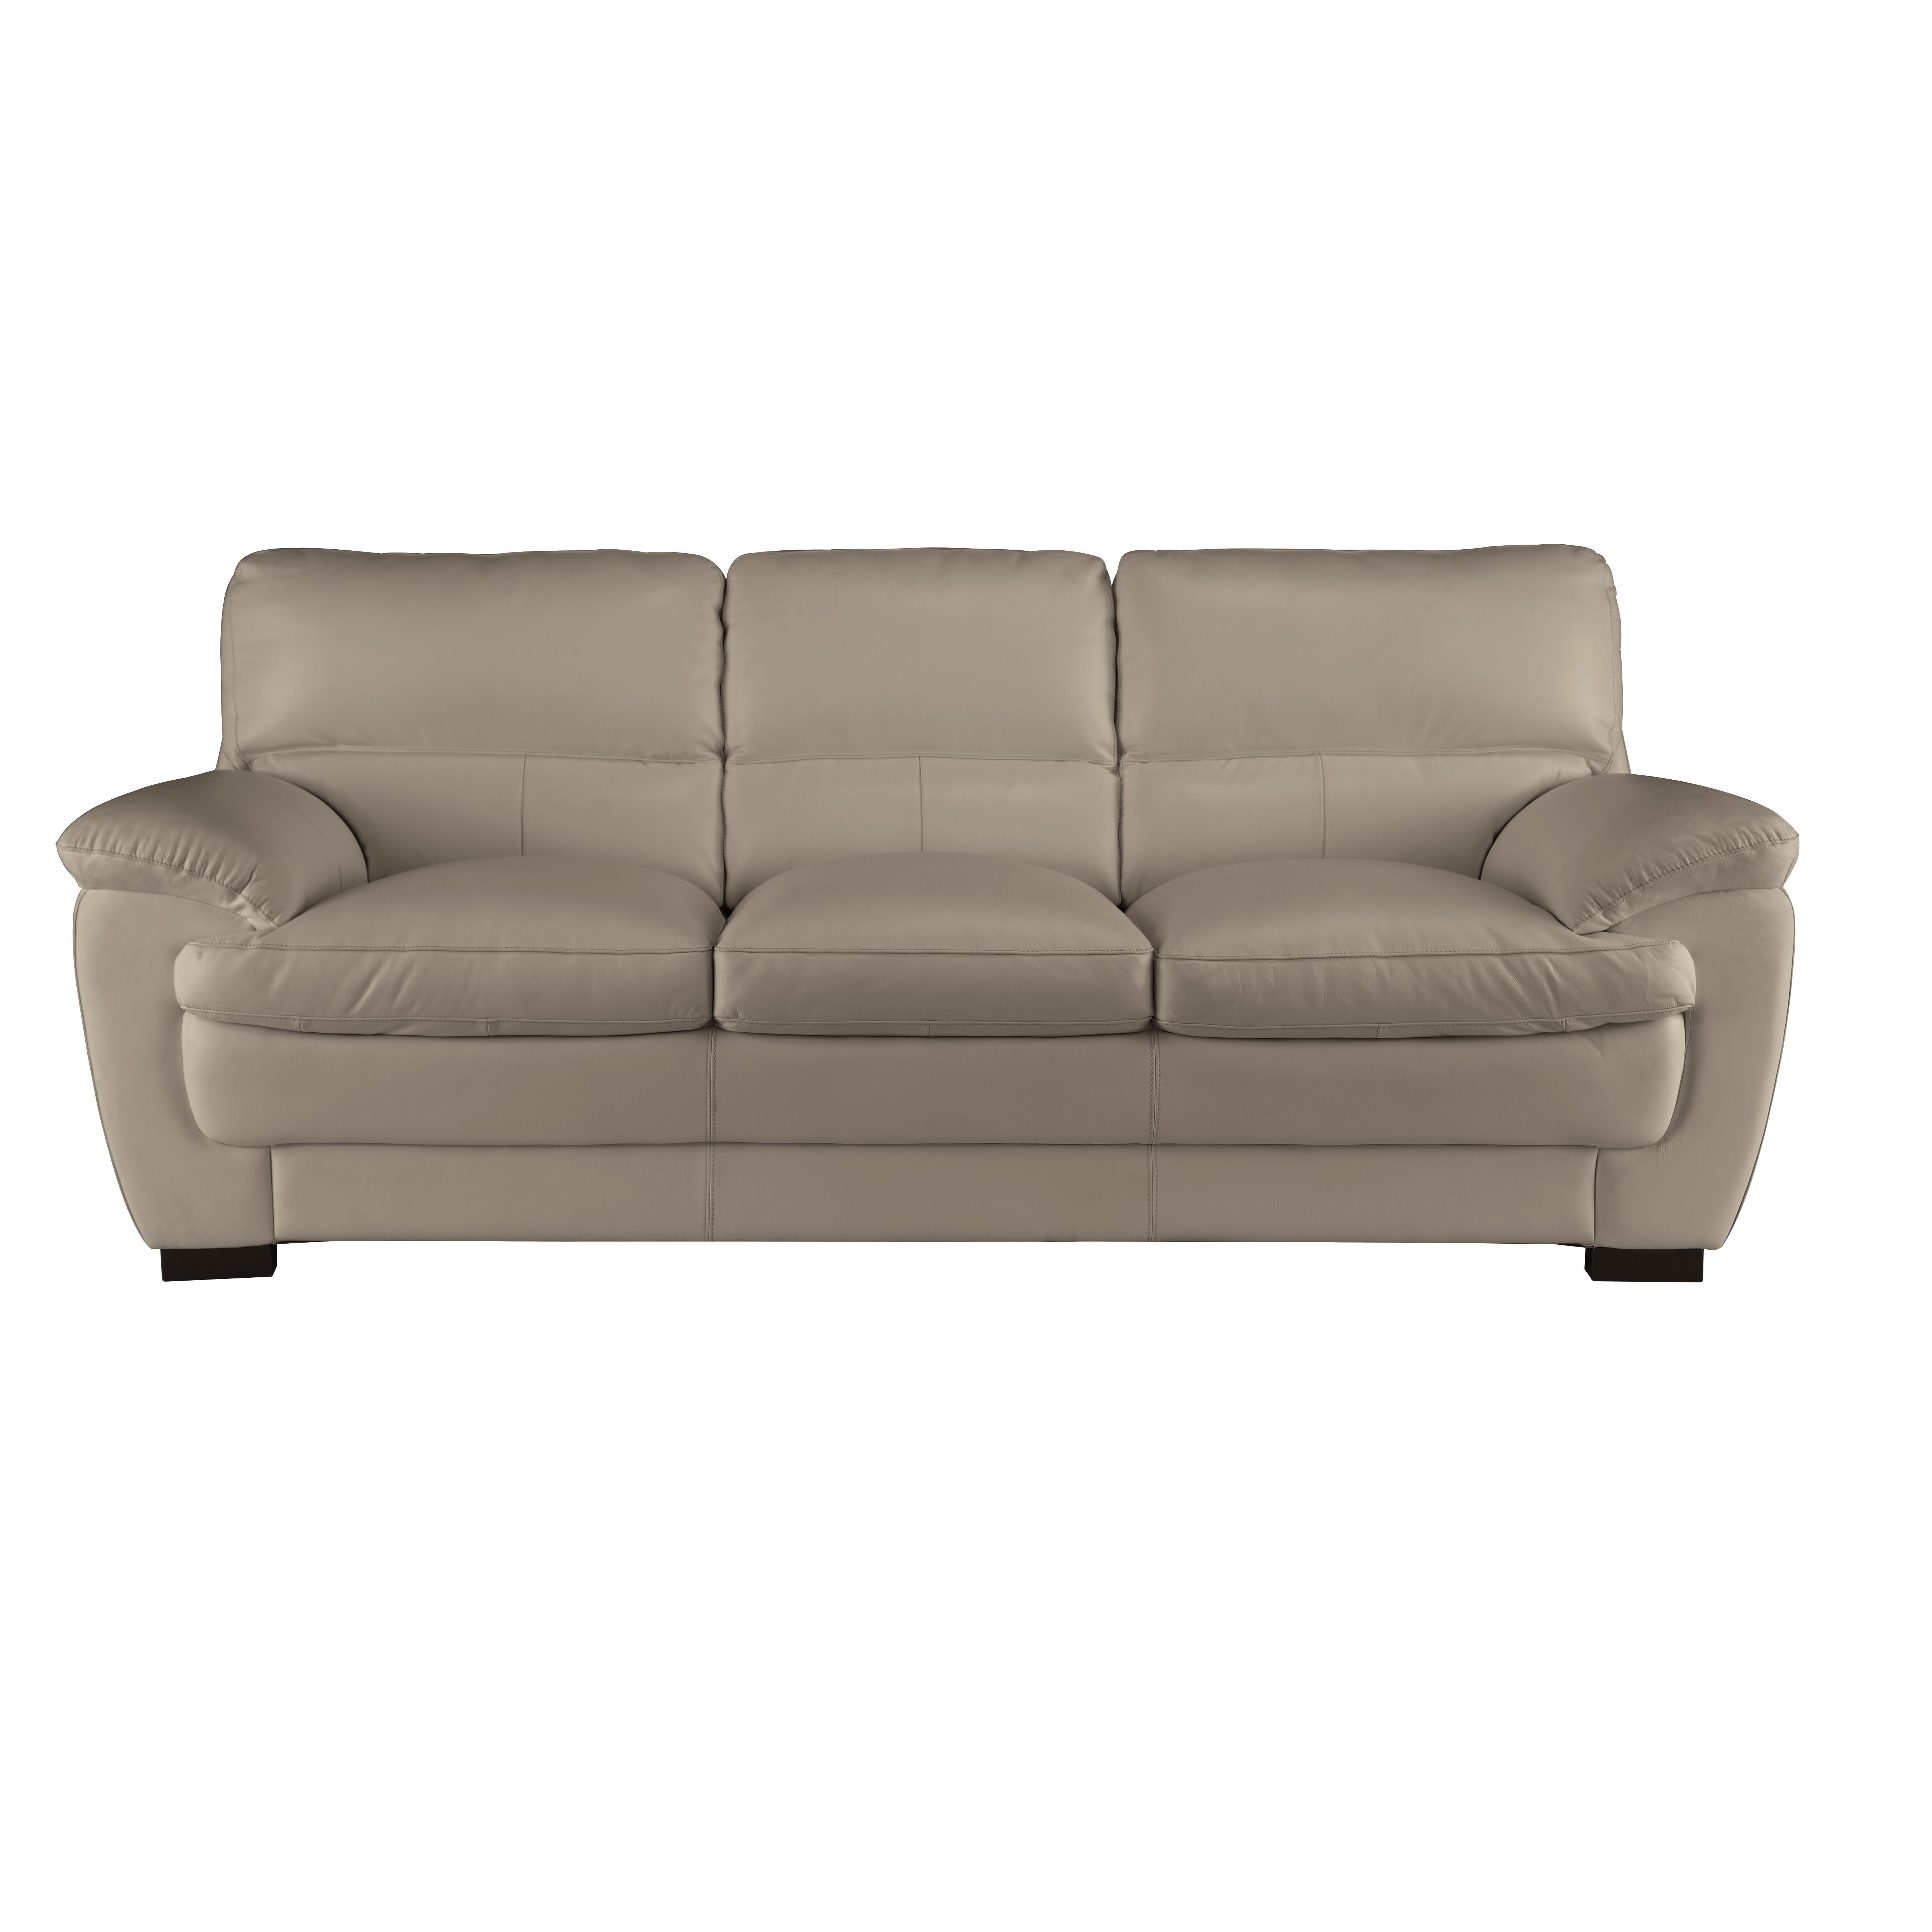 Cosmo Leather Sofa 28 Images Cosmo 443002 Sectional